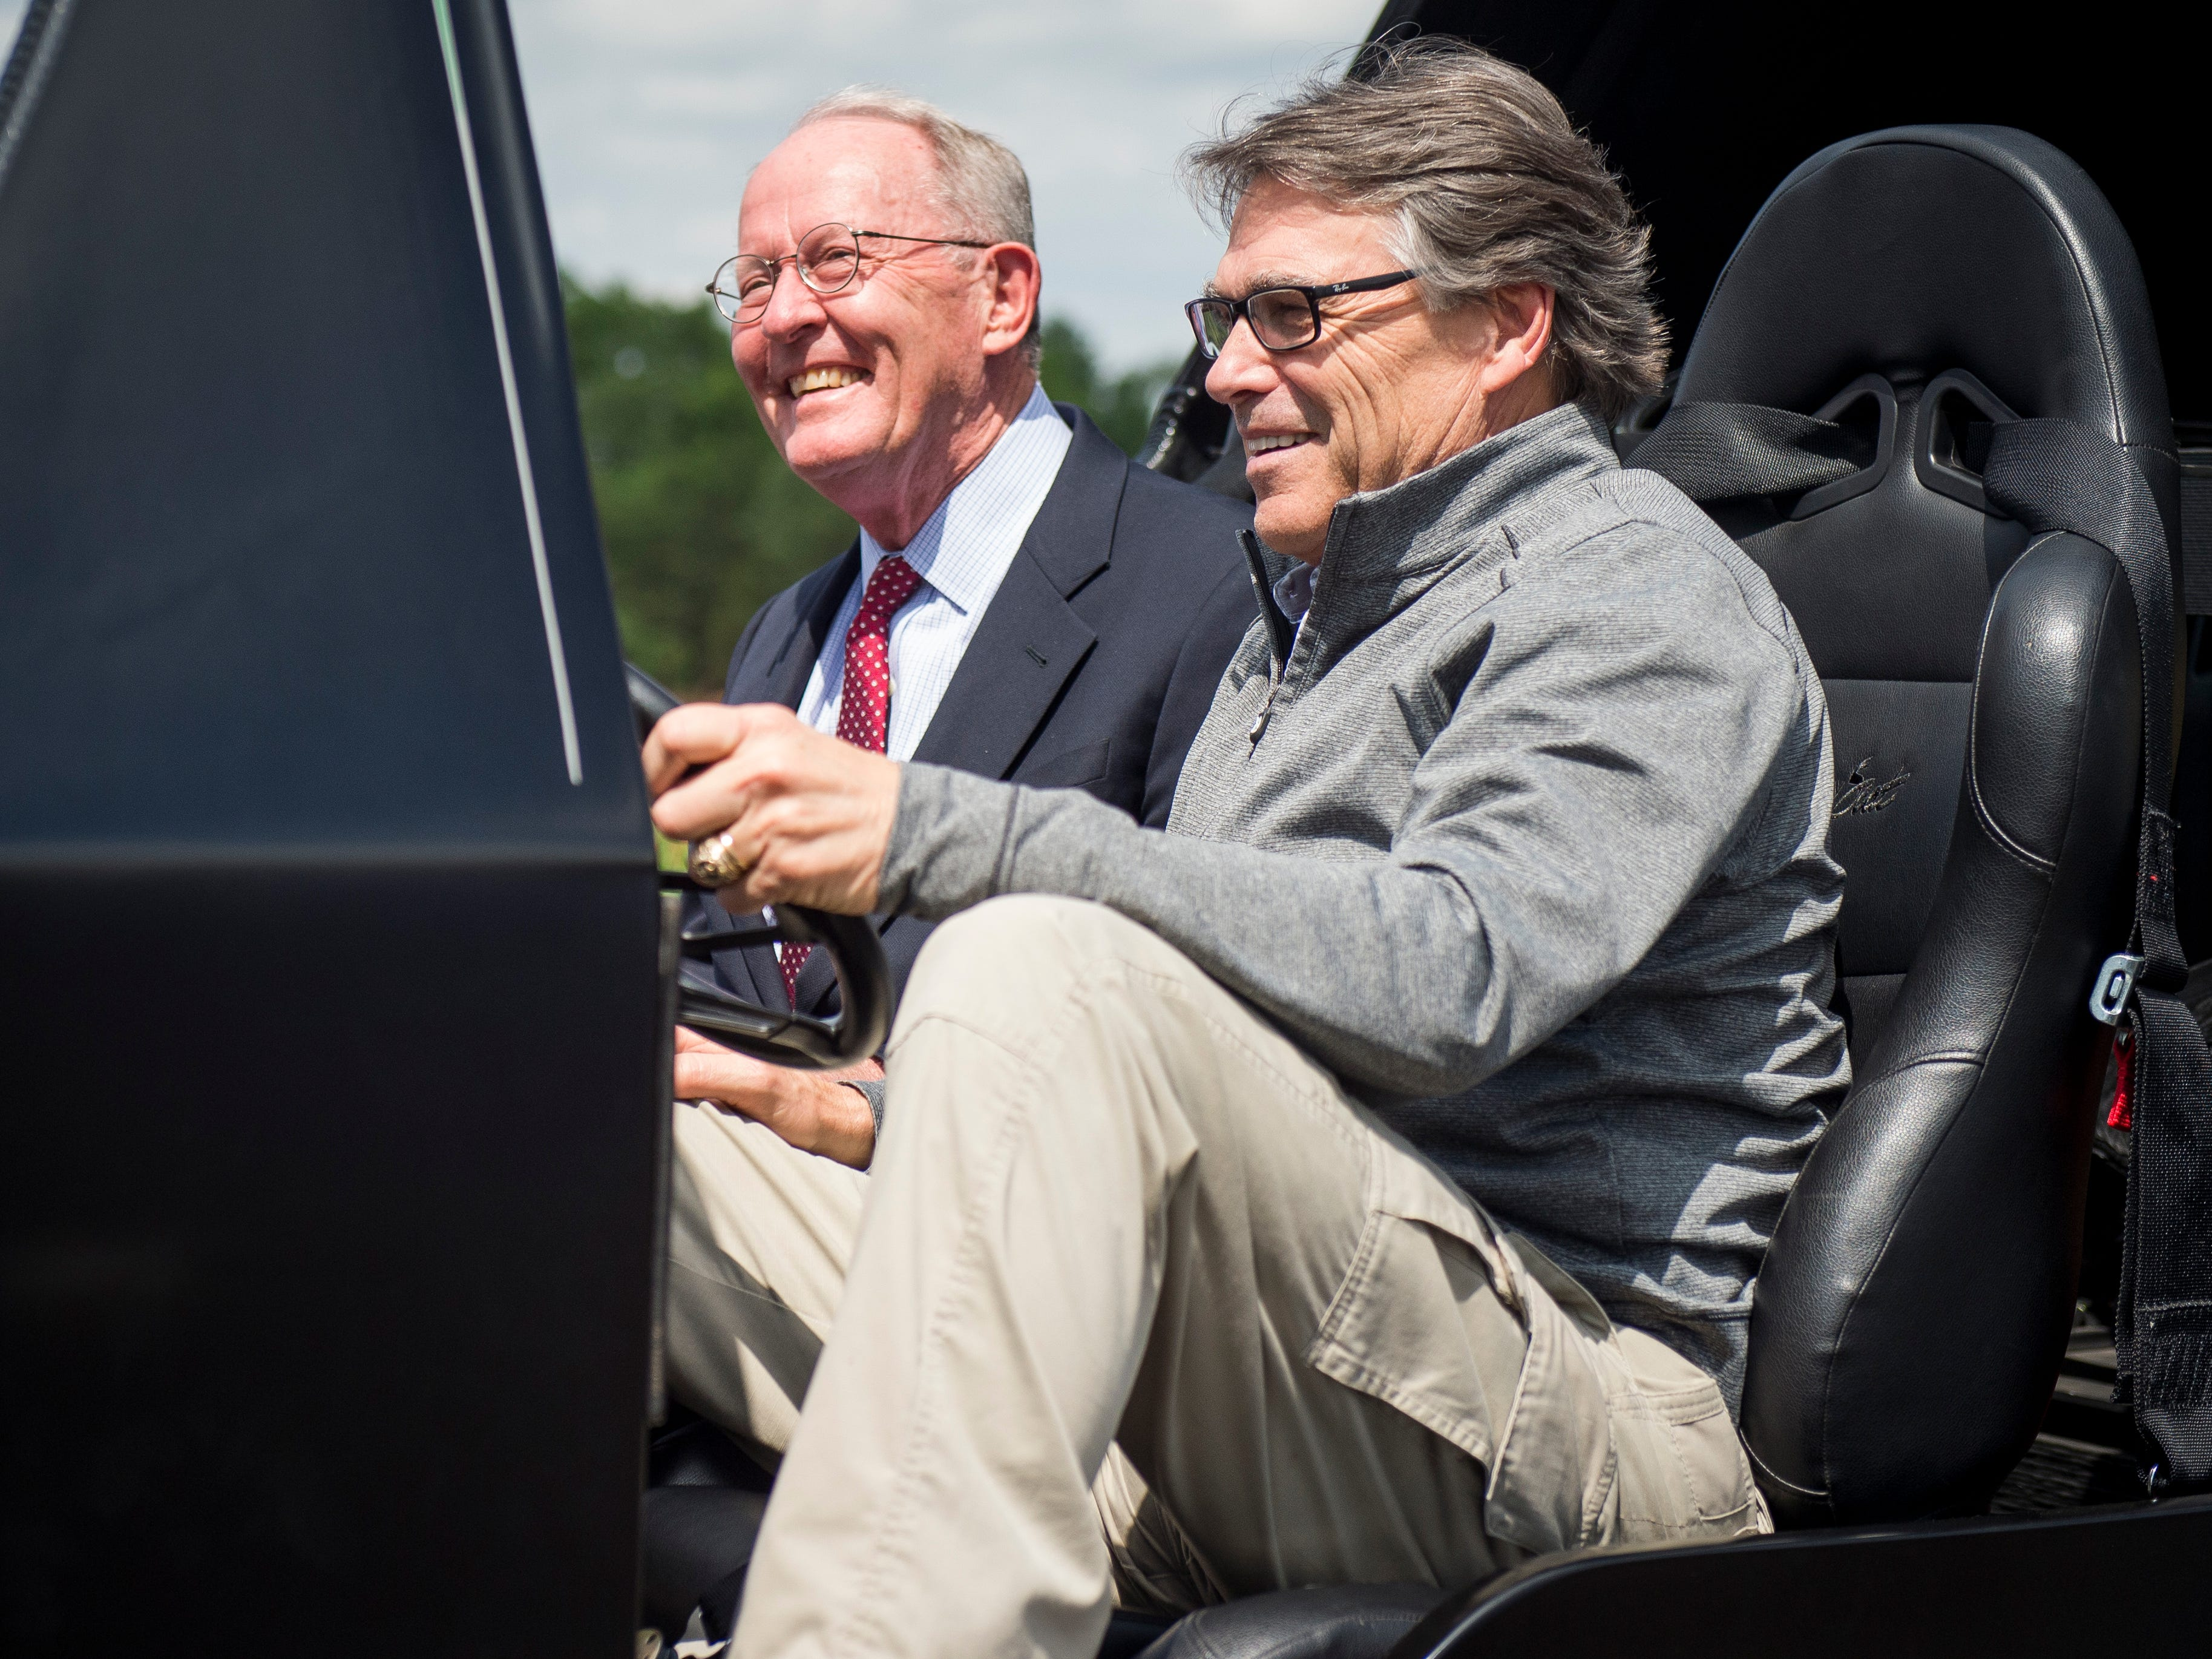 Secretary of Department of Energy Rick Perry, right, and U.S. Sen. Lamar Alexander, left, sit in a 3D-printed vehicle during a tour of Oak Ridge National Laboratory's Manufacturing Demonstration Facility on Monday, May 22, 2017.